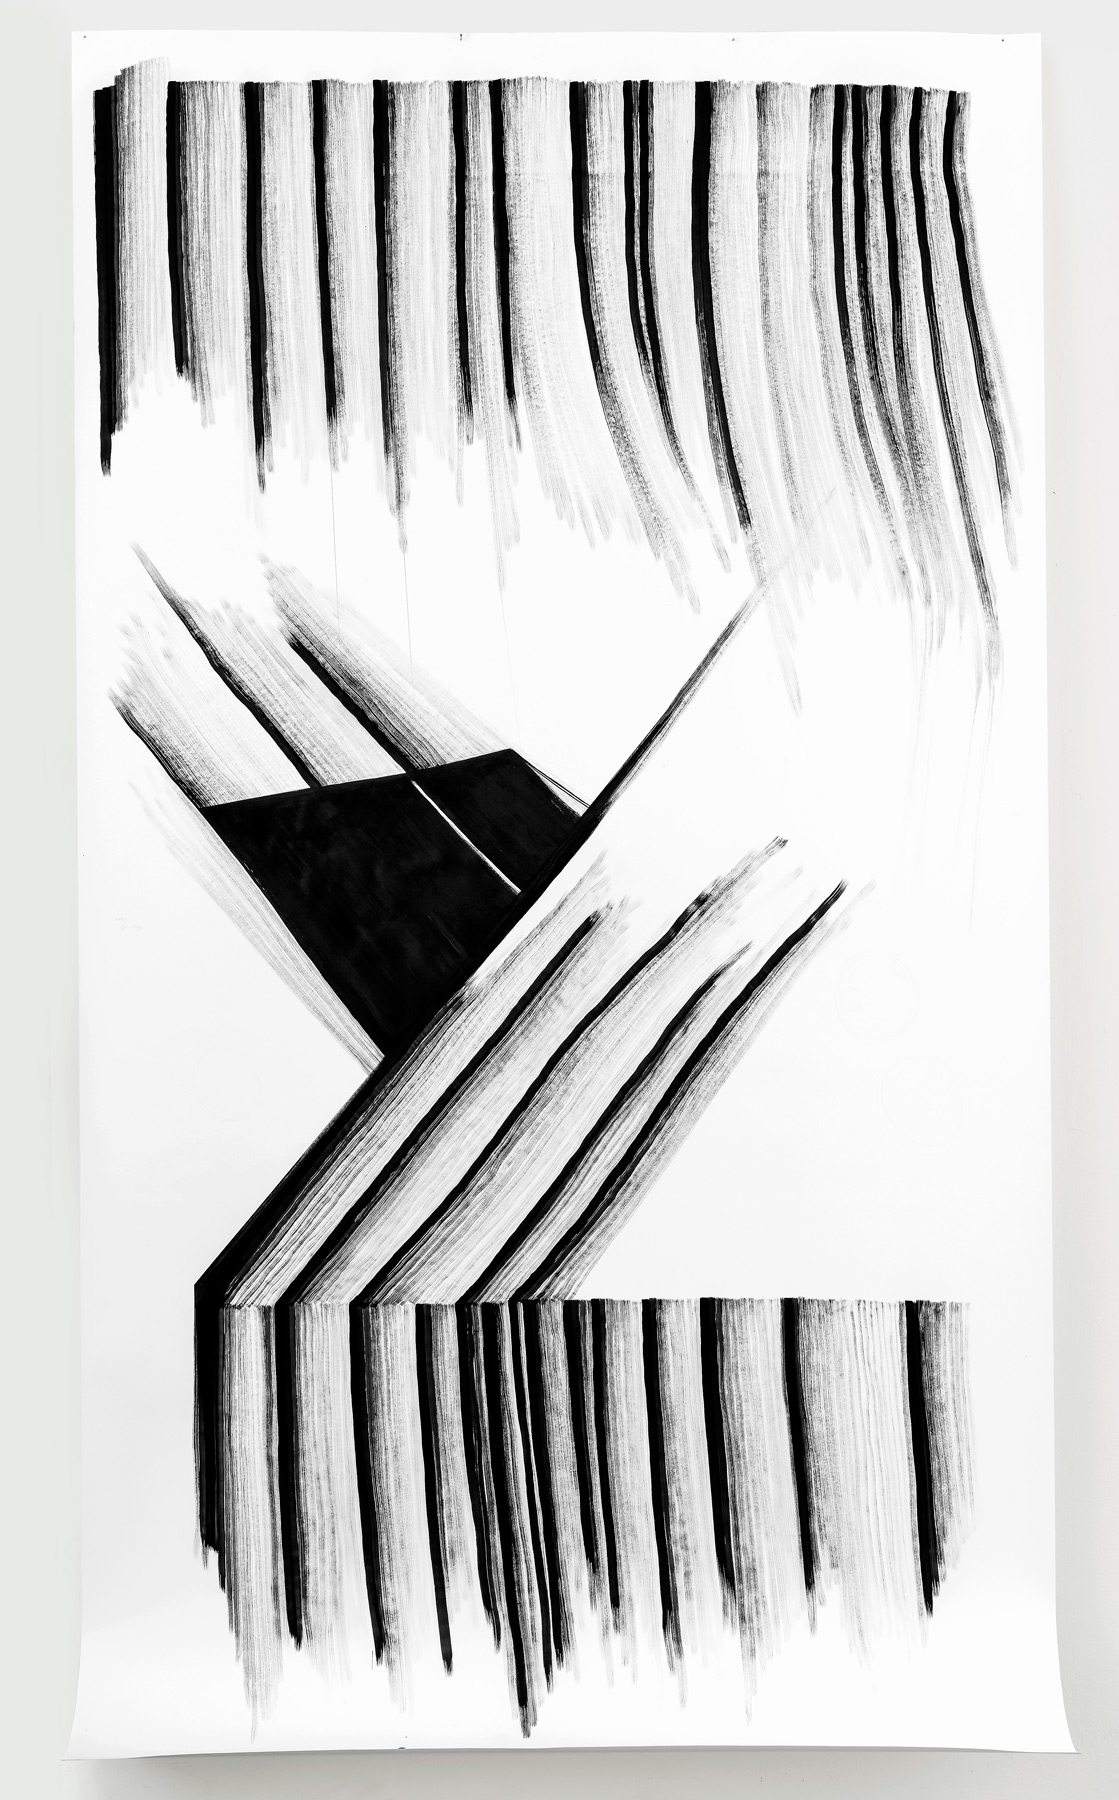 Nina Annabelle Märkl | Displays 3 | Ink on paper | 270 x 135 cm | 2017/2018